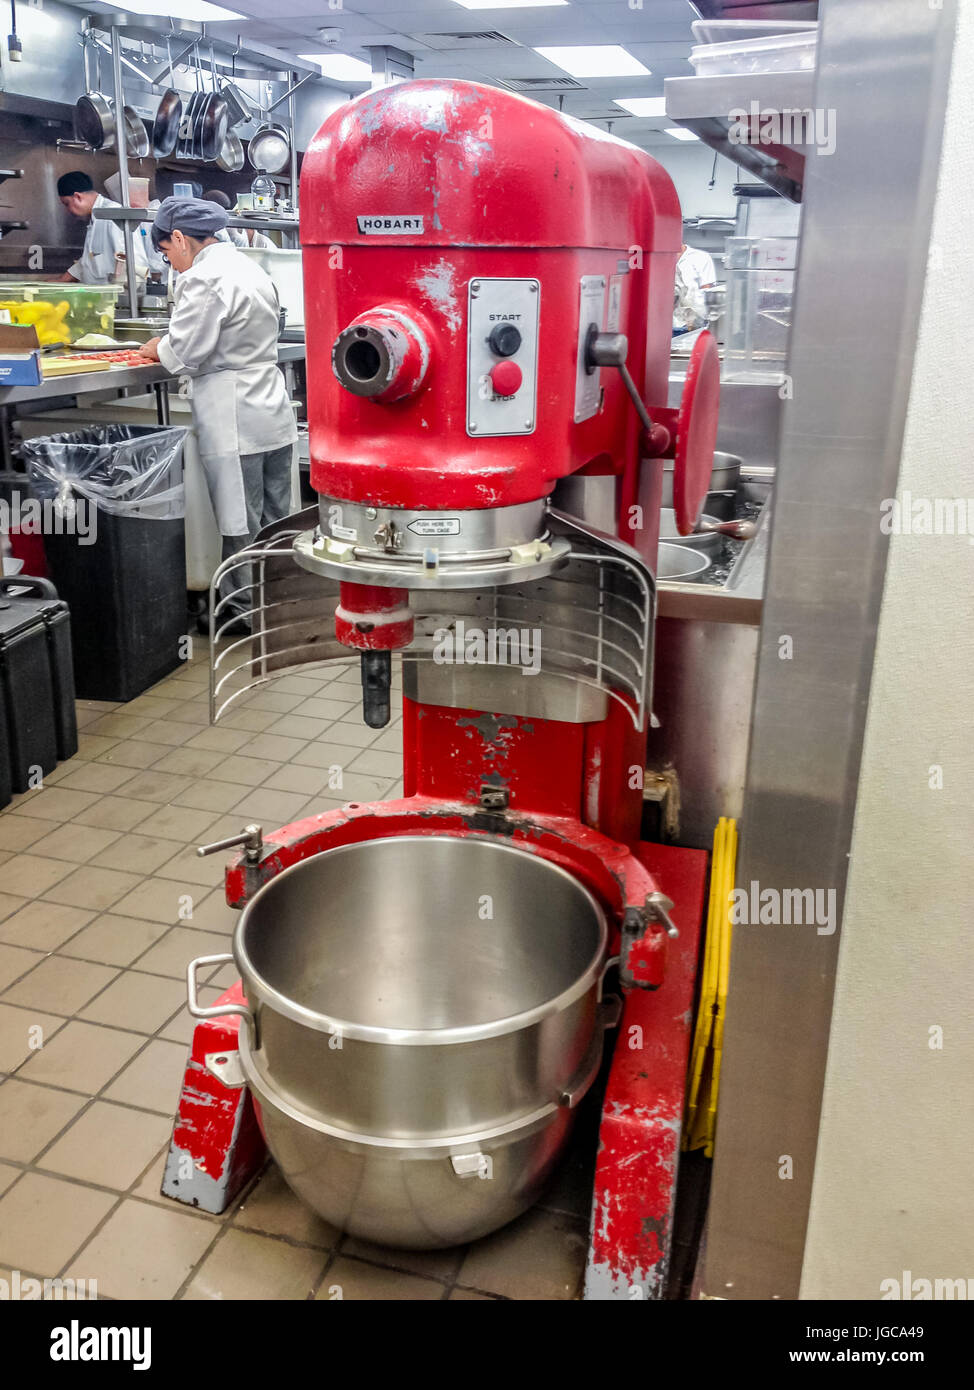 Genial Large Red Industrial Mixer With An Empty Clean Stainless Steel Bowl In A  Bakery With People Working At Kitchen Counters In The Background